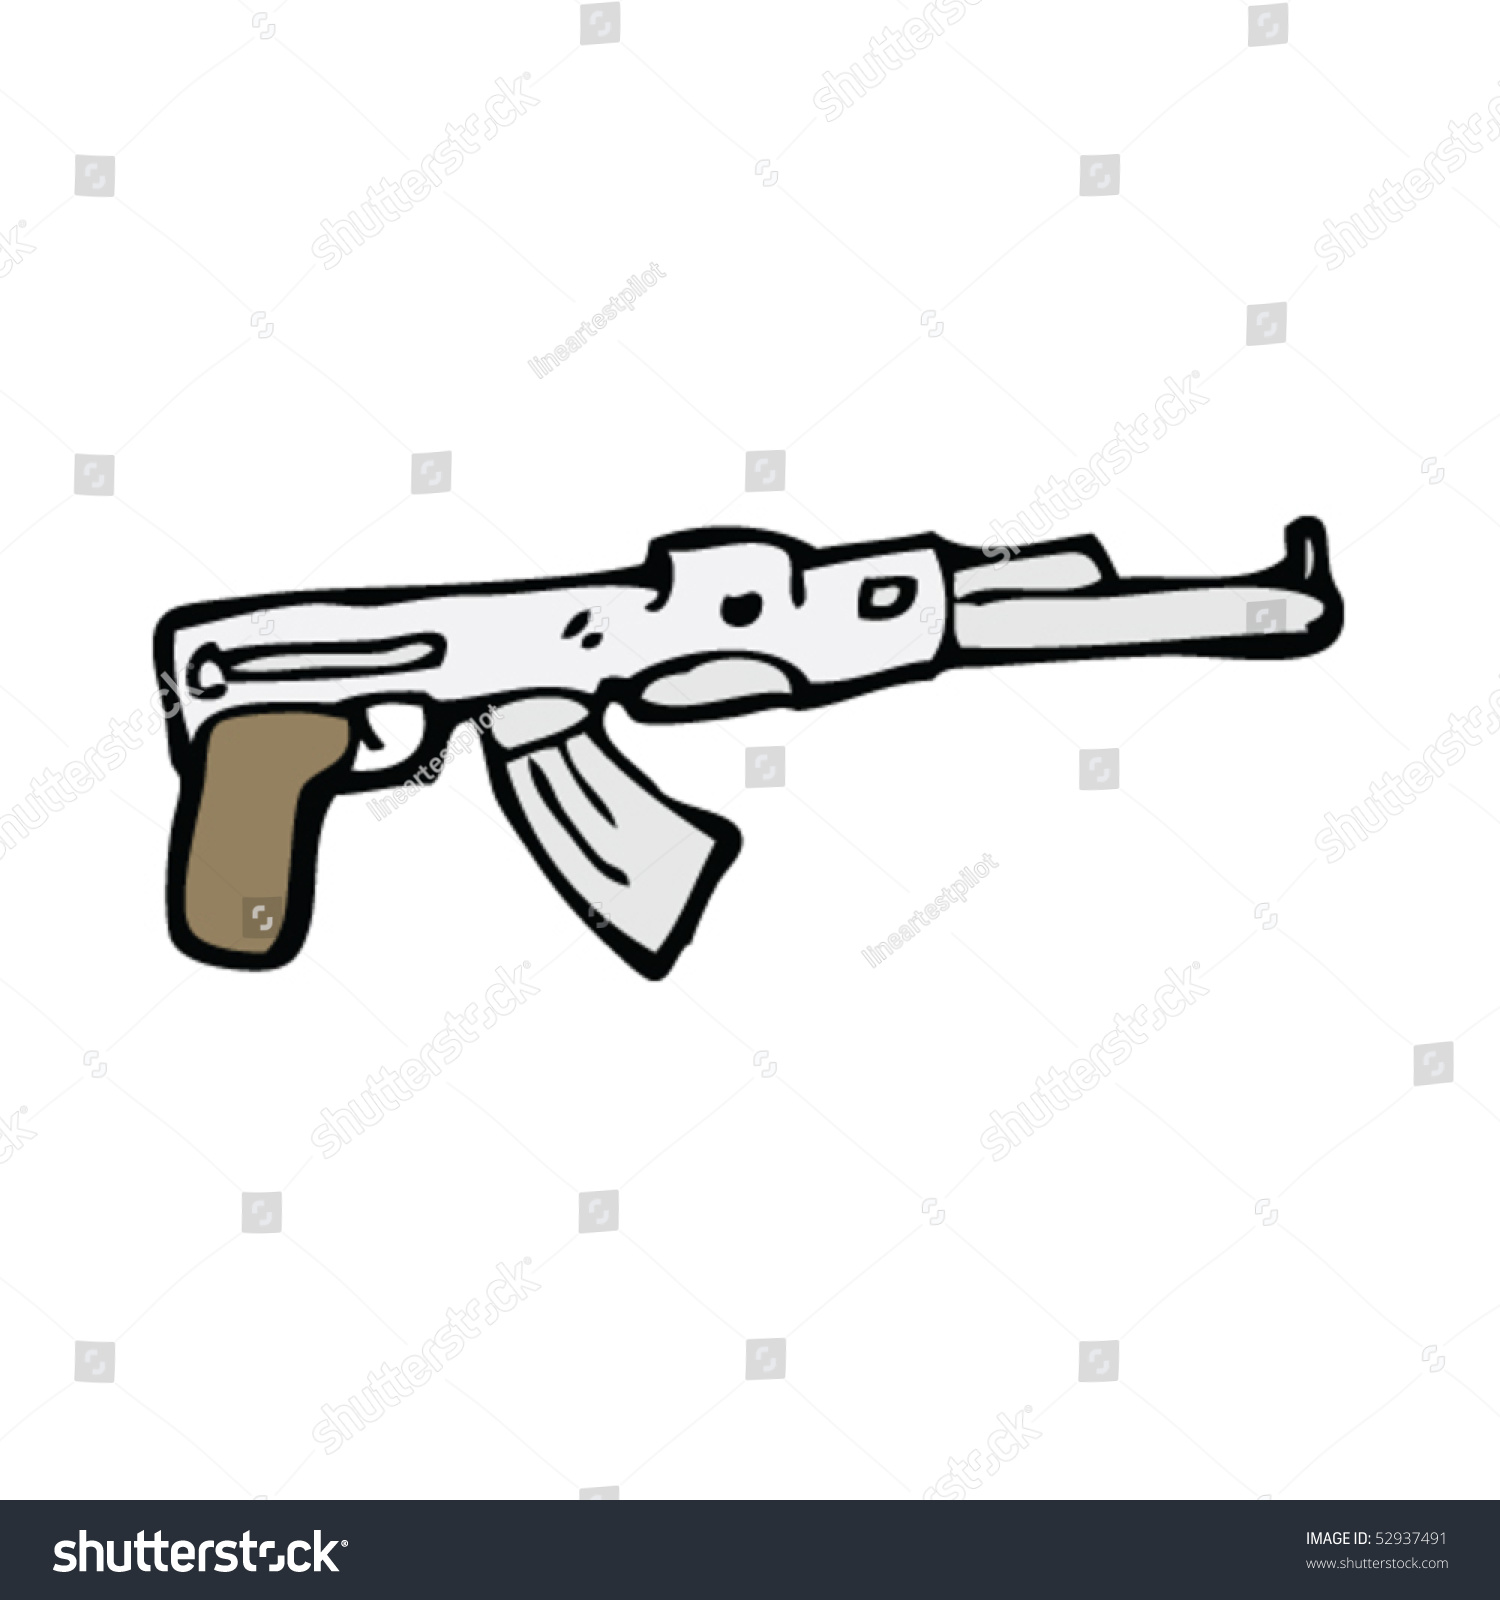 Machine Gun Drawing Stock Vector 52937491 : Shutterstock